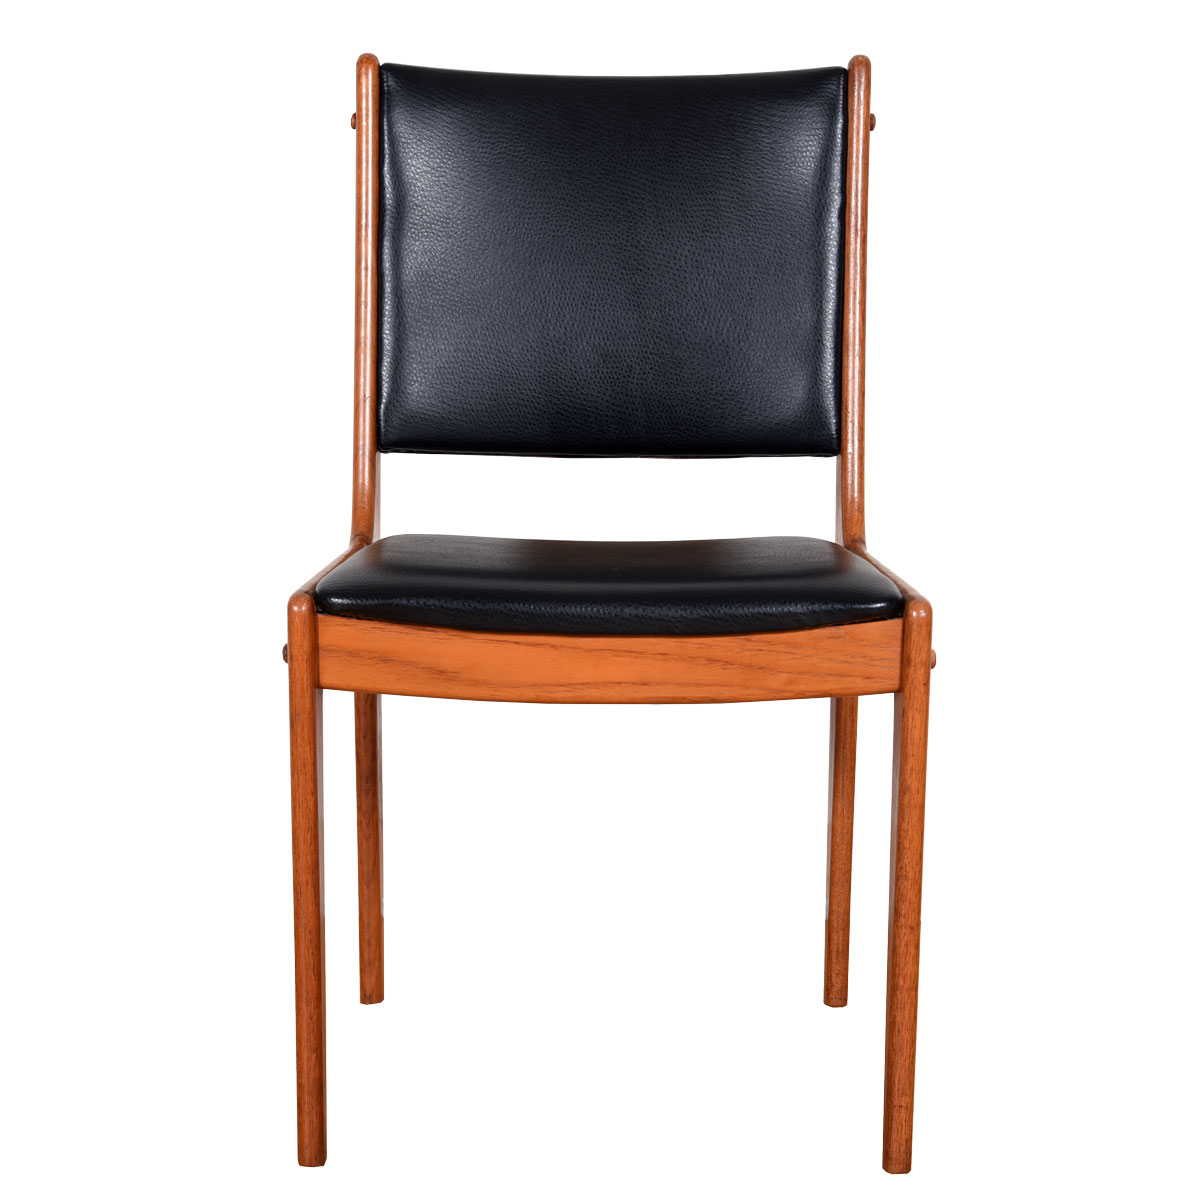 Set of 6 Teak and Black Dining Chairs by Johannes Andersen